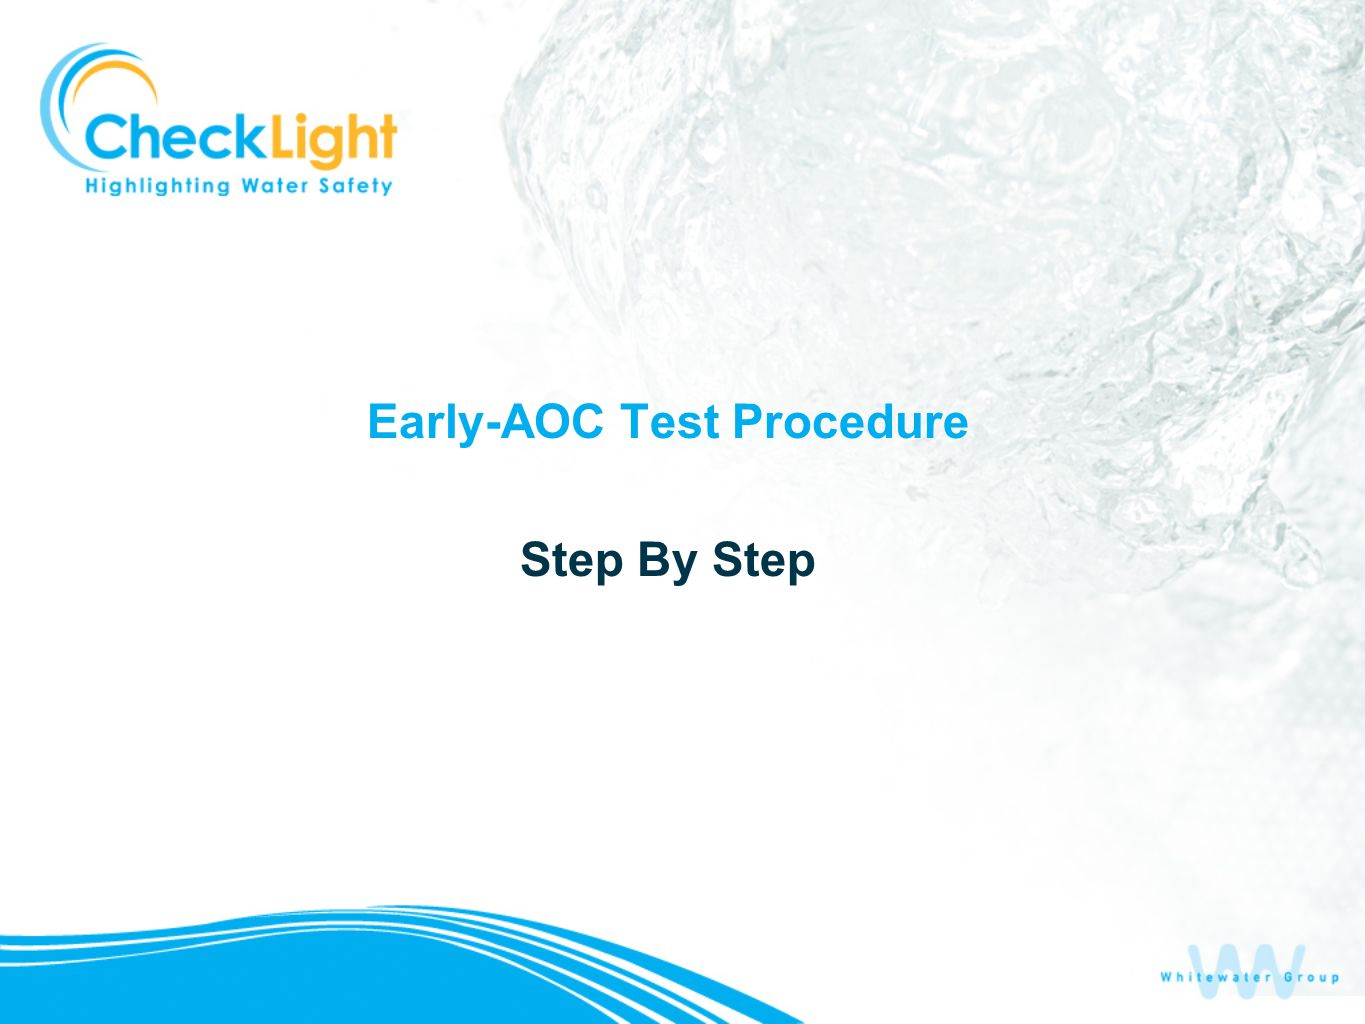 Early-AOC Test Procedure Step By Step